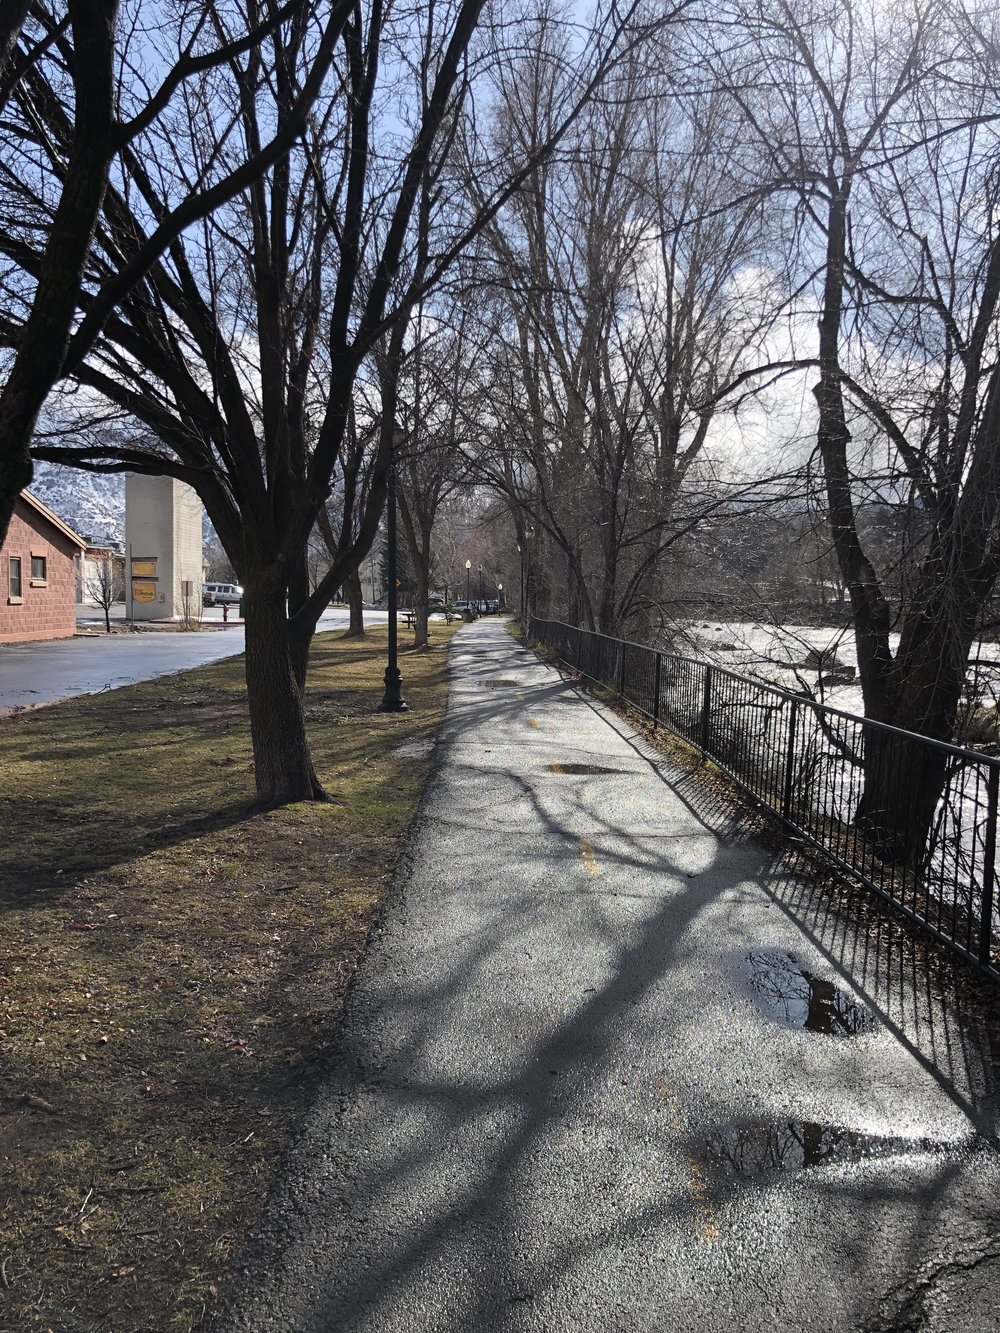 Animas River Trail in March. What a difference a couple weeks make.